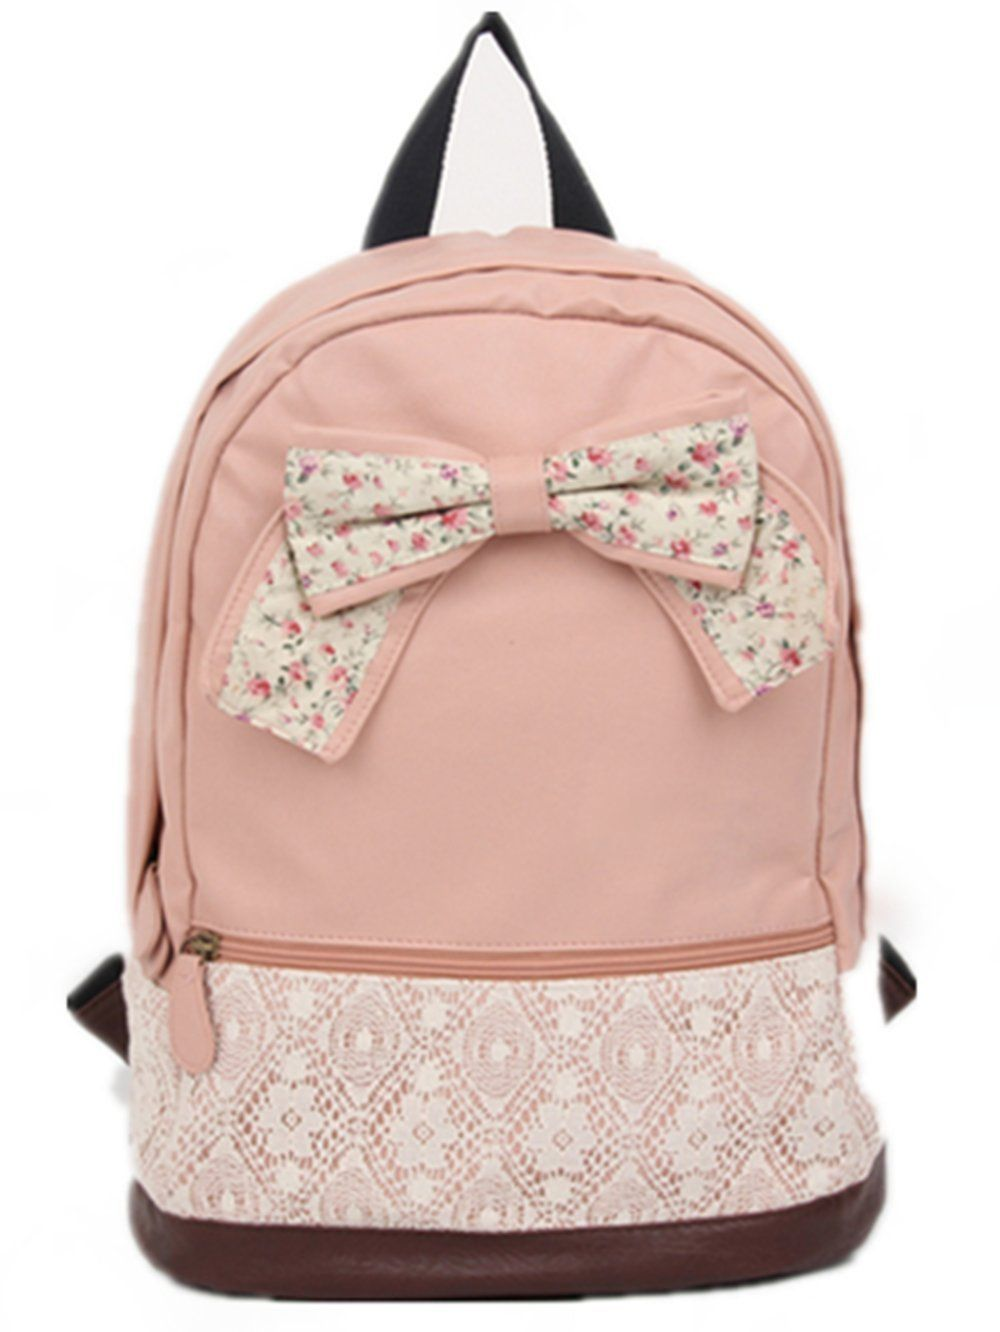 cool backpacks for teens - Google Search | Cool backpacks for ...